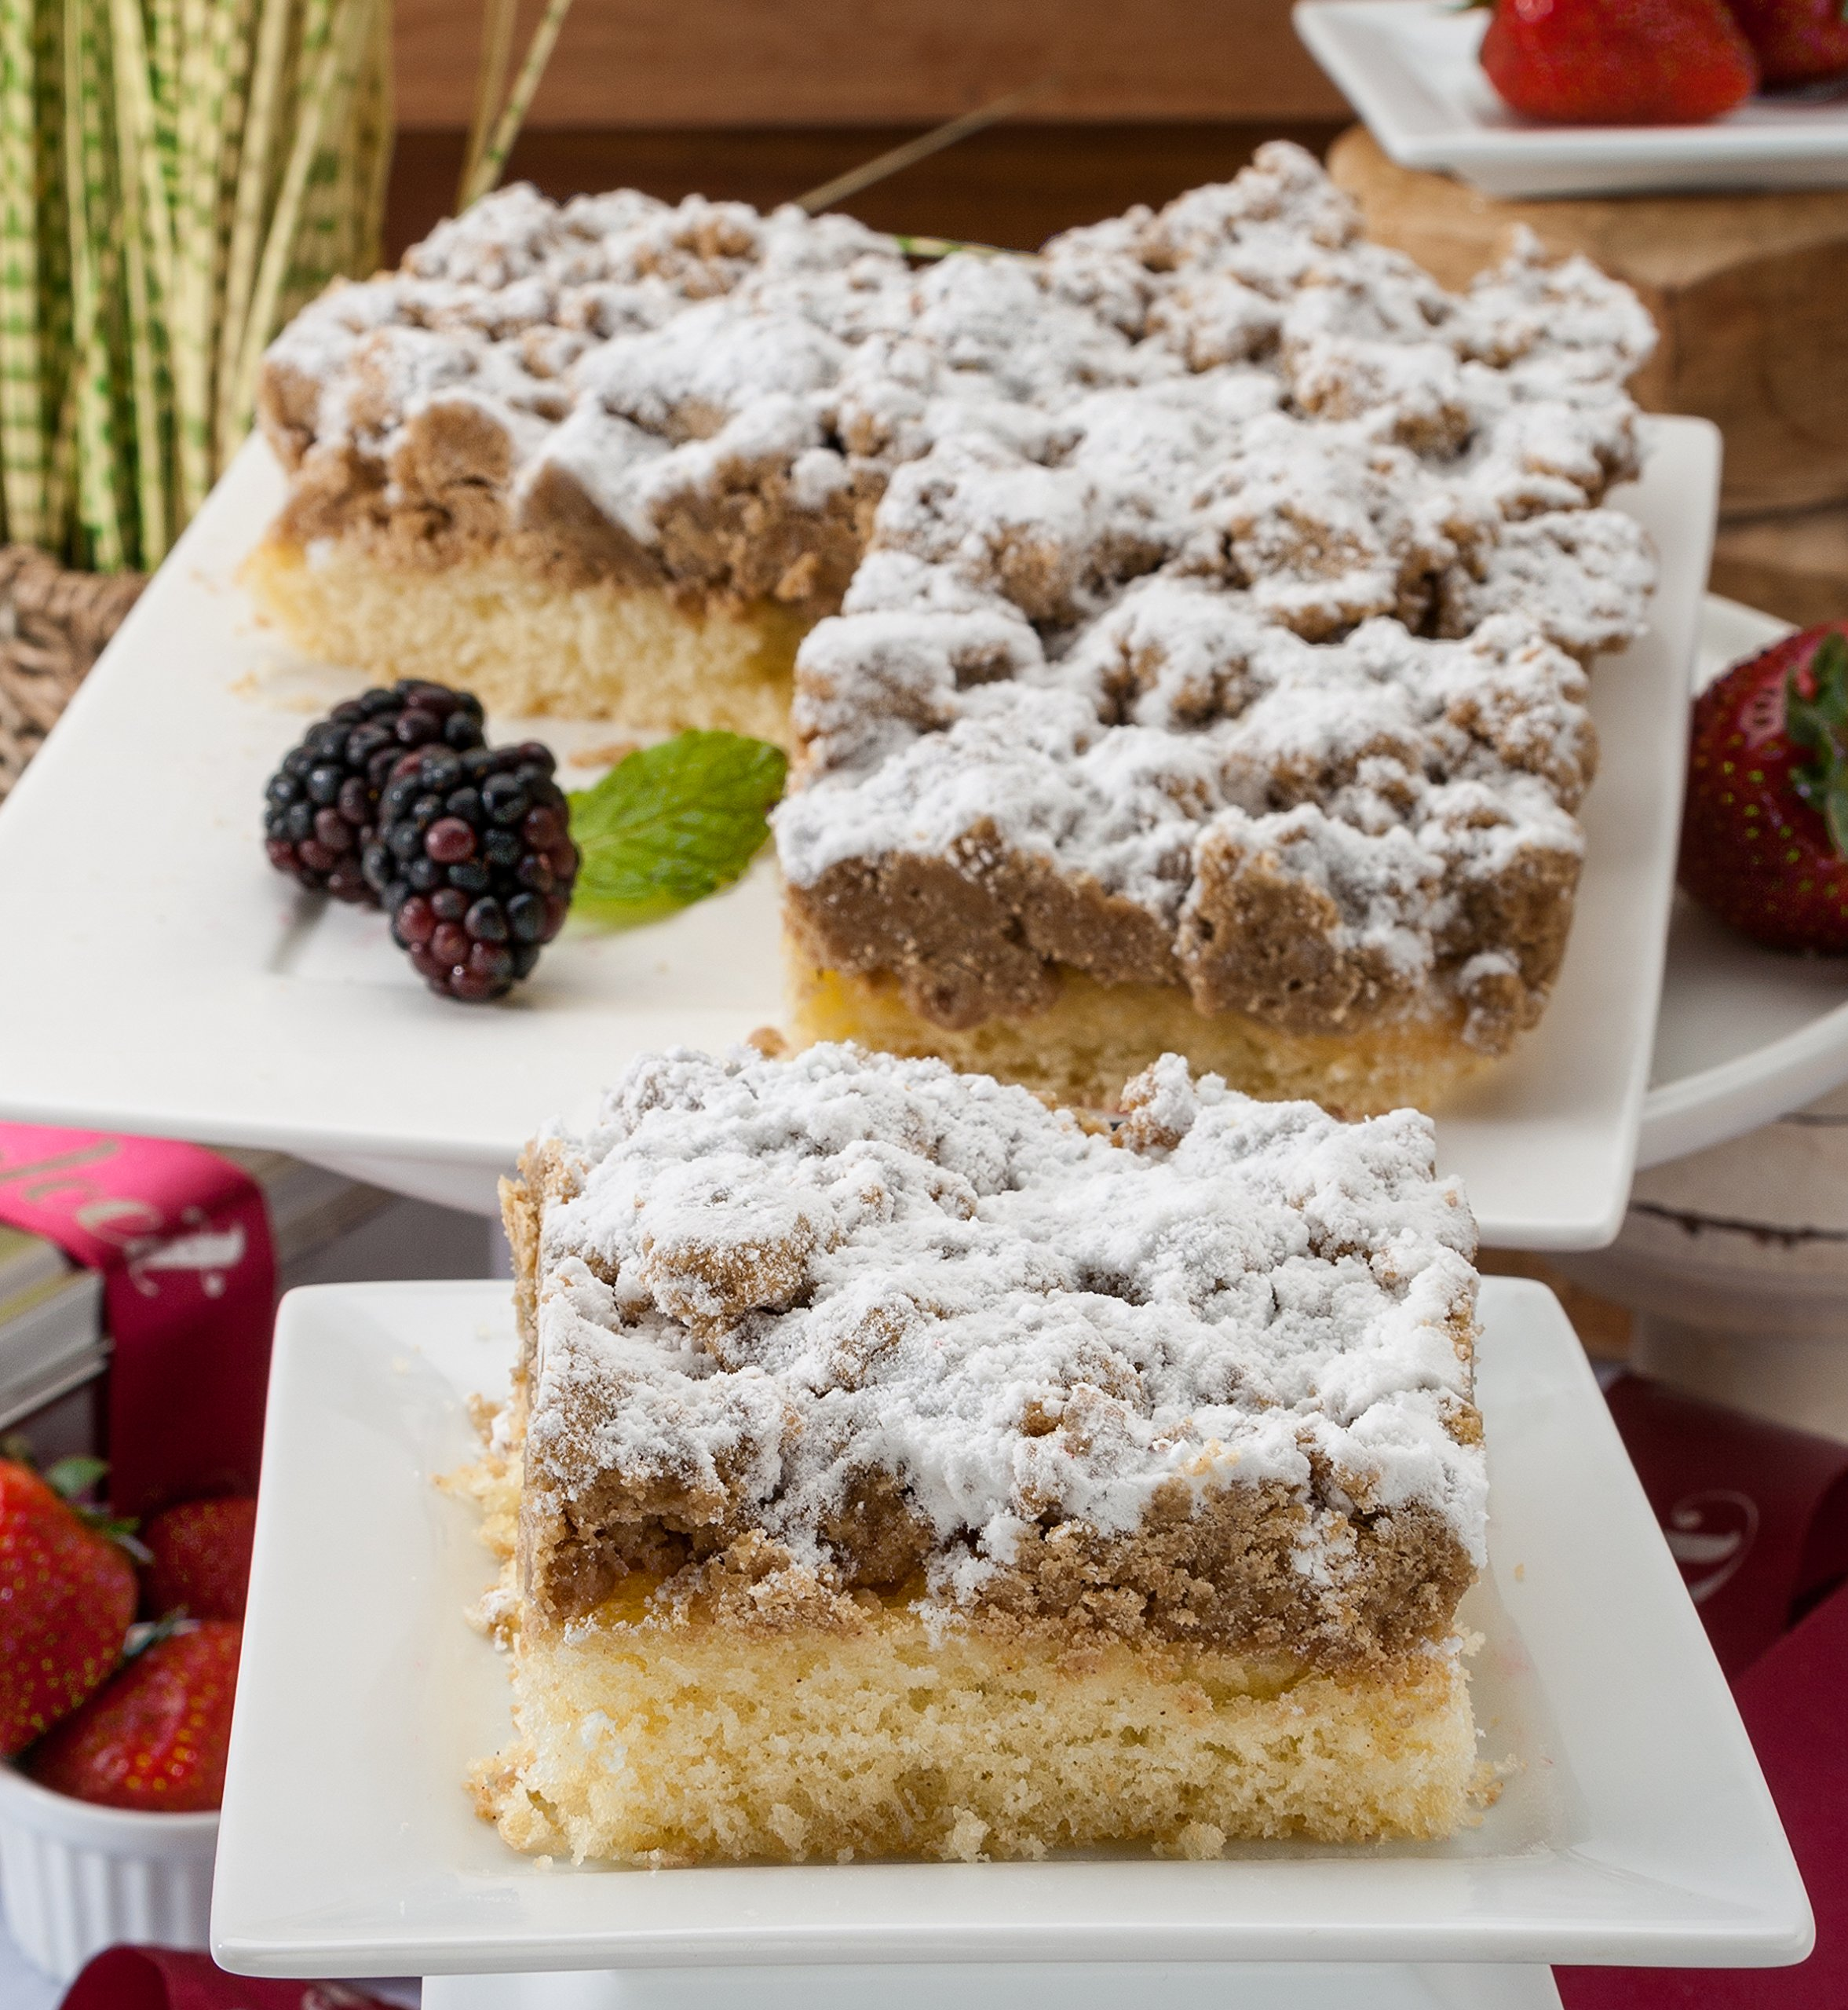 Dulcet Original Old Fashioned Crumb Cake Gourmet Gift Basket, incudes 2 boxes of 8 X 8 Crumb Cakes, ideal for birthday, get well, Sympathy, thank you, top gift! by Dulcet Gift Baskets (Image #1)